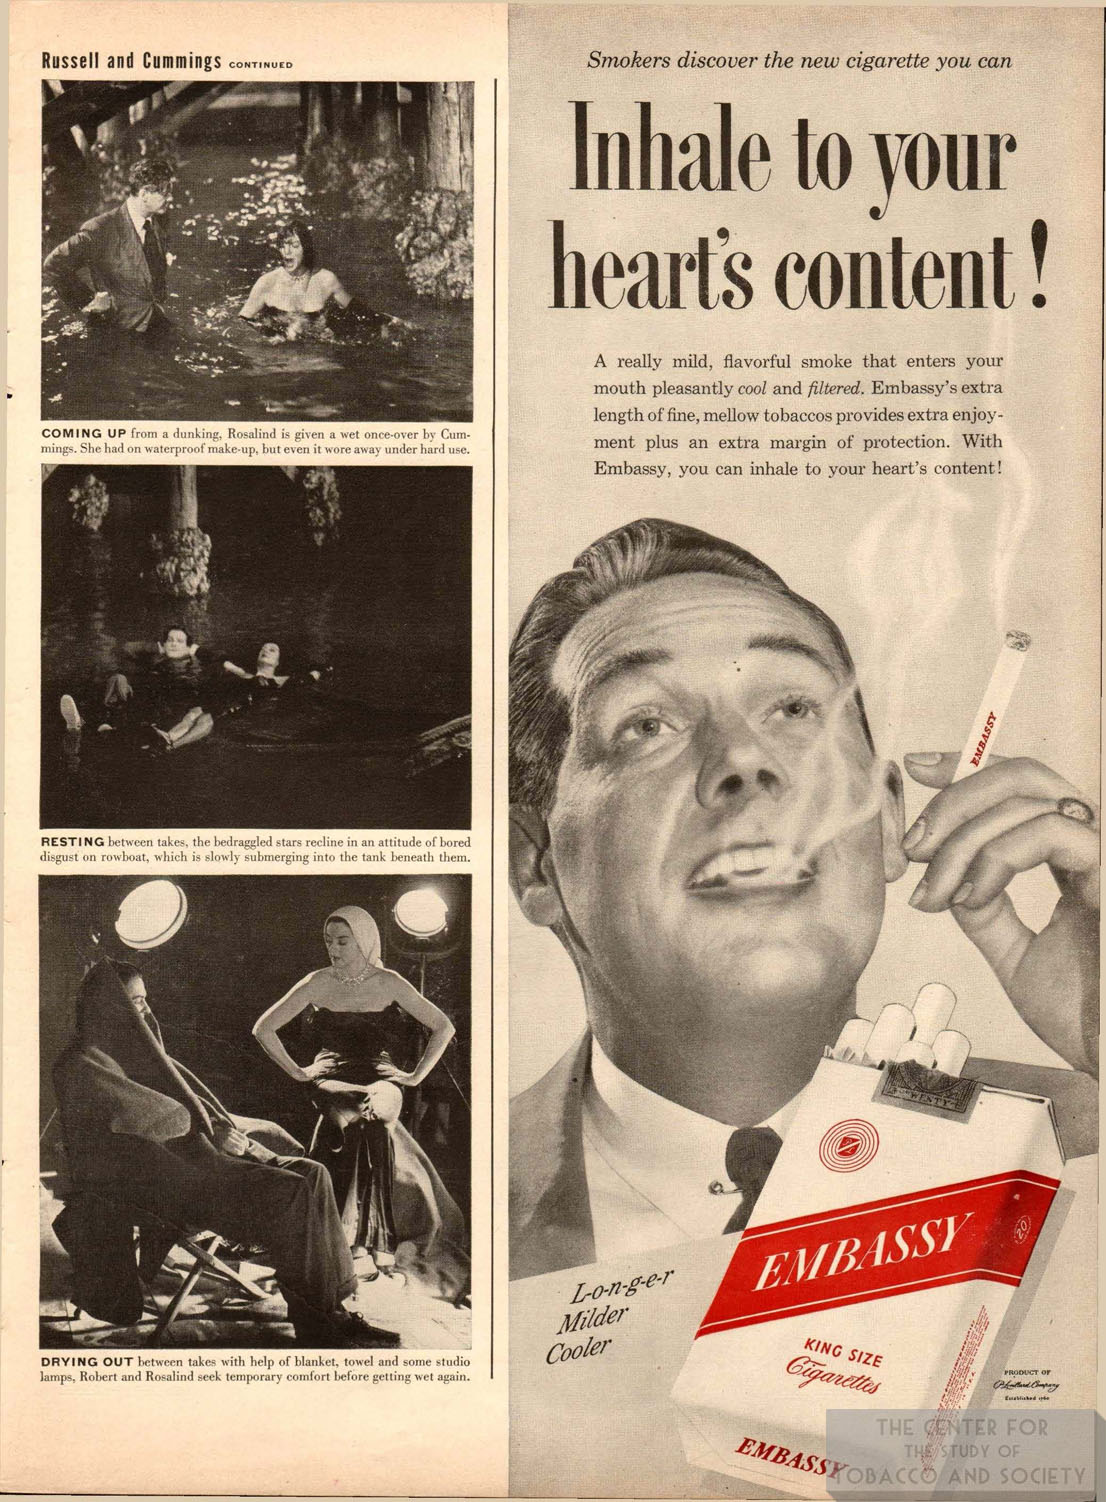 1949 Embassy Ad Inhale to Your Hearts Content